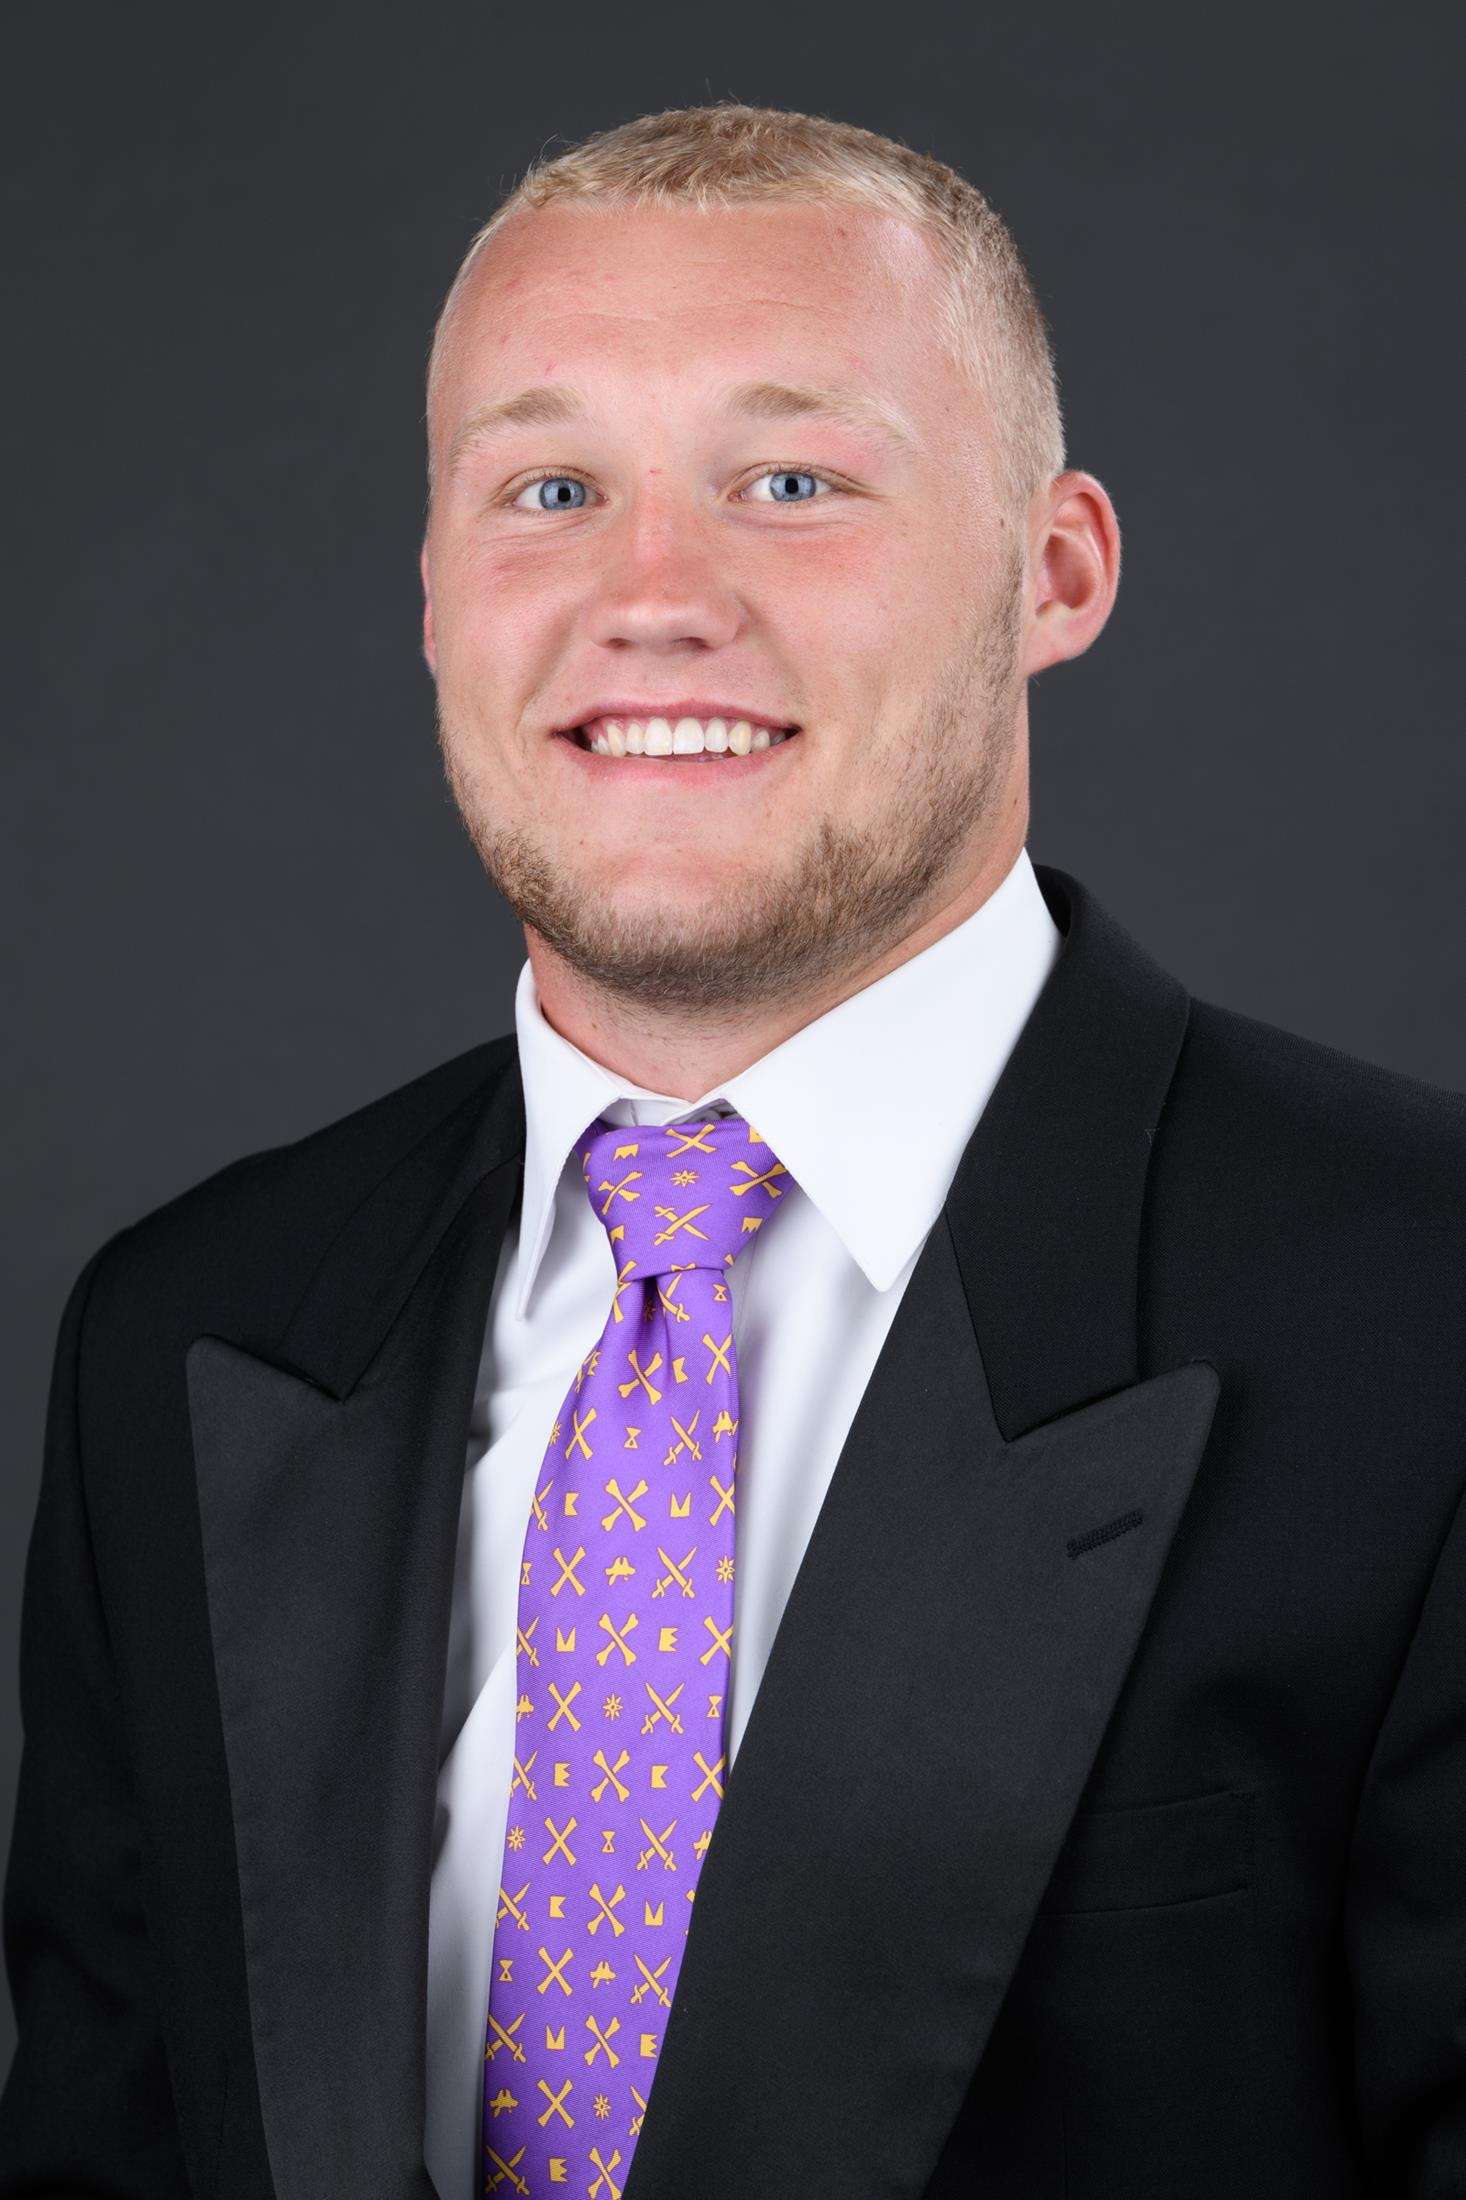 Holton Ahlers Football East Carolina University Athletics He is an actor, known for их собственная лига (1992). holton ahlers football east